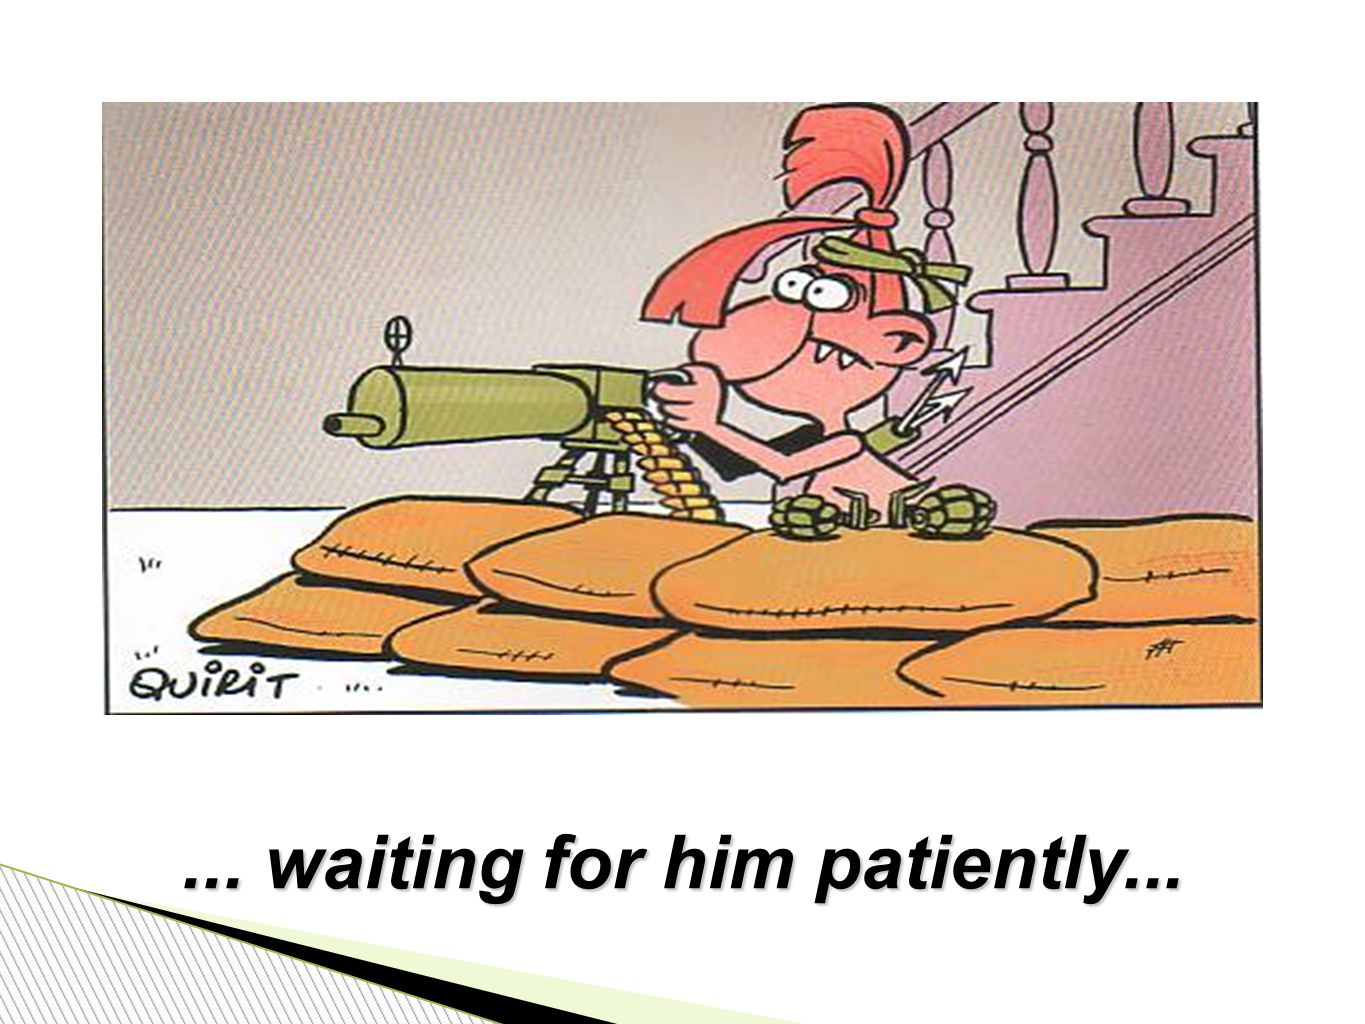 ... waiting for him patiently...